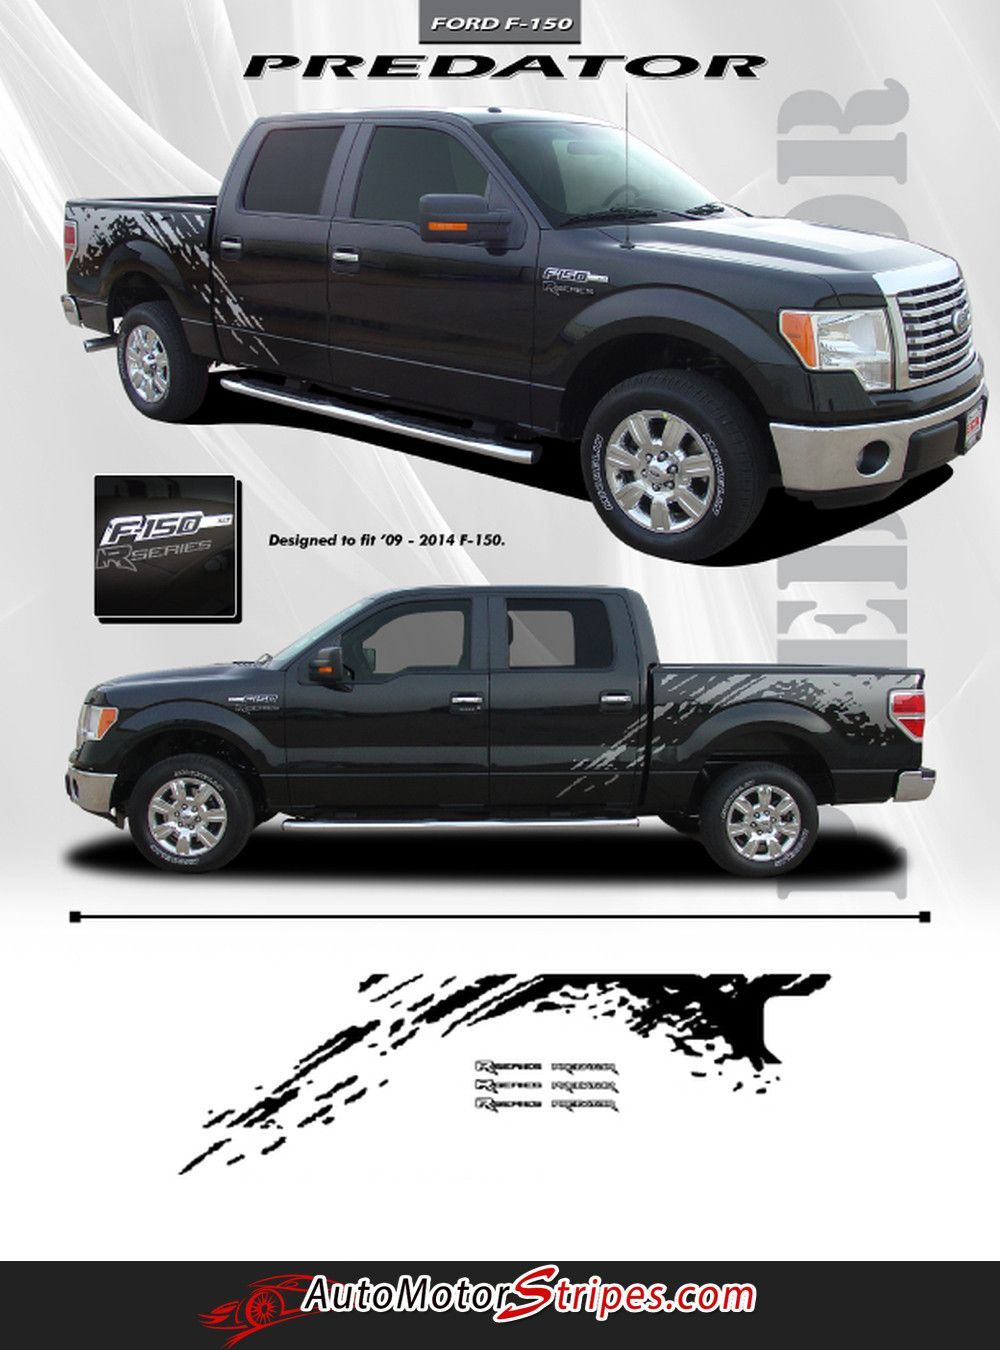 2014 Ford F 150 Stx Configurations : configurations, F-150, Predator, Factory, Style, Raptor, Mudslinger, Vinyl, Decal, Graphic, Stripes, F150,, Decals,